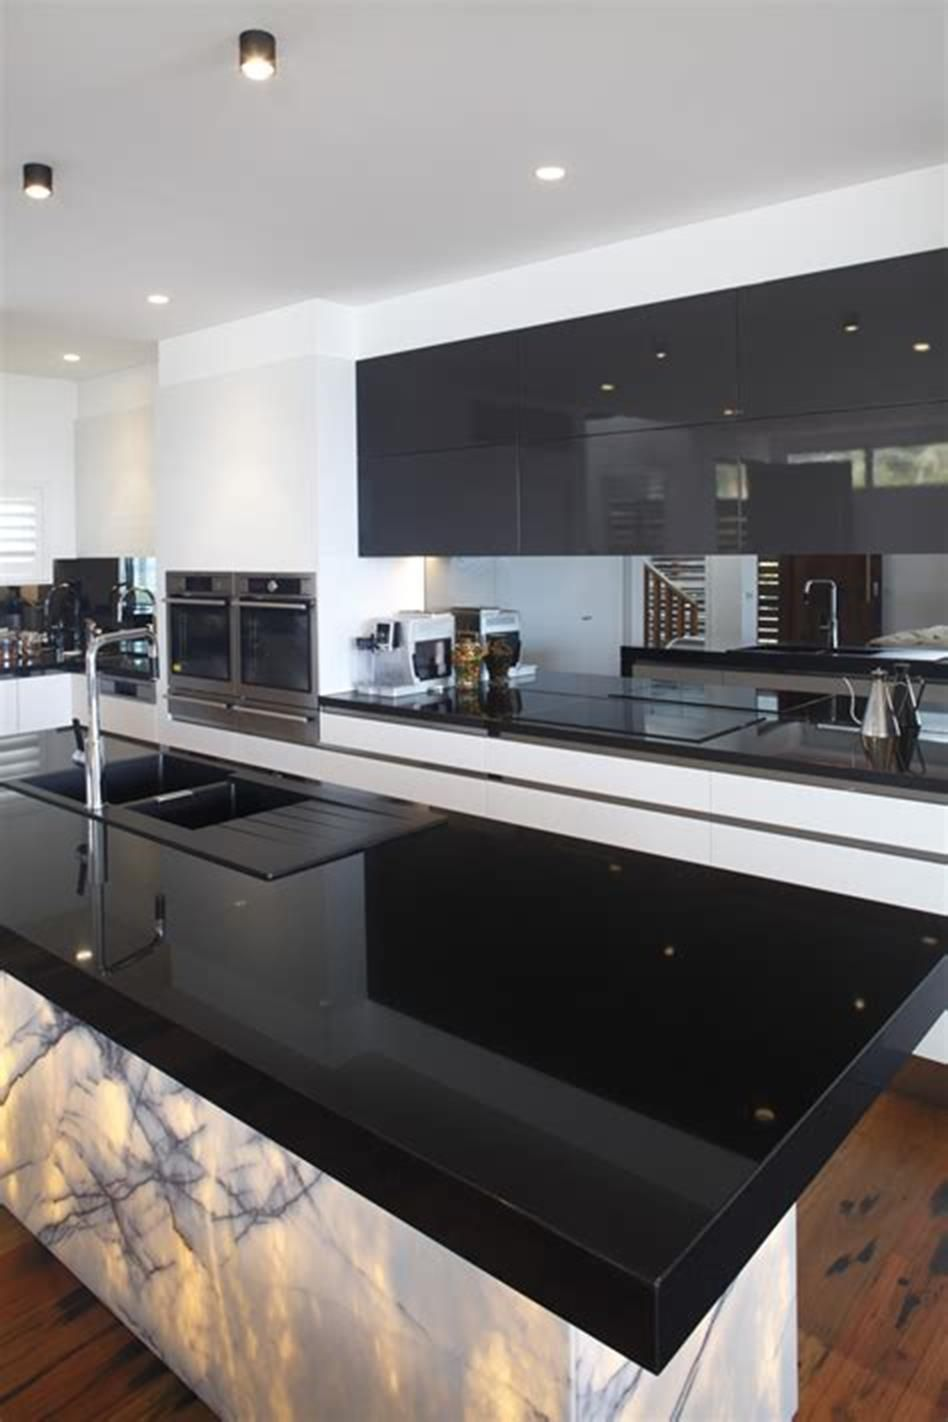 31 Amazing Modern Kitchen Ideas For 2020 You Ll Love 11 31 Amazing